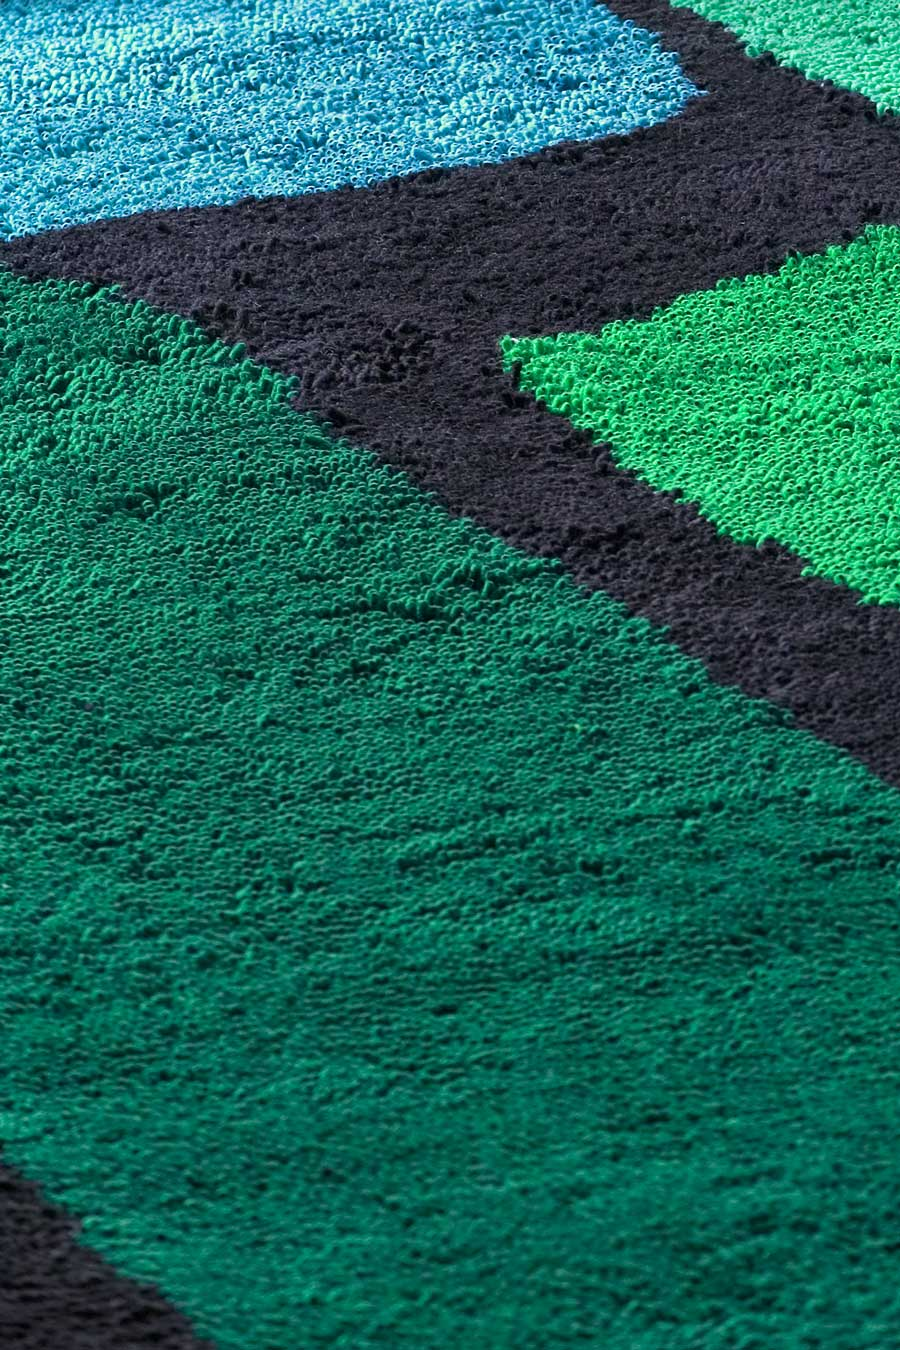 close up of jewel rug by dinosaur designs green and blue large shapes on black background